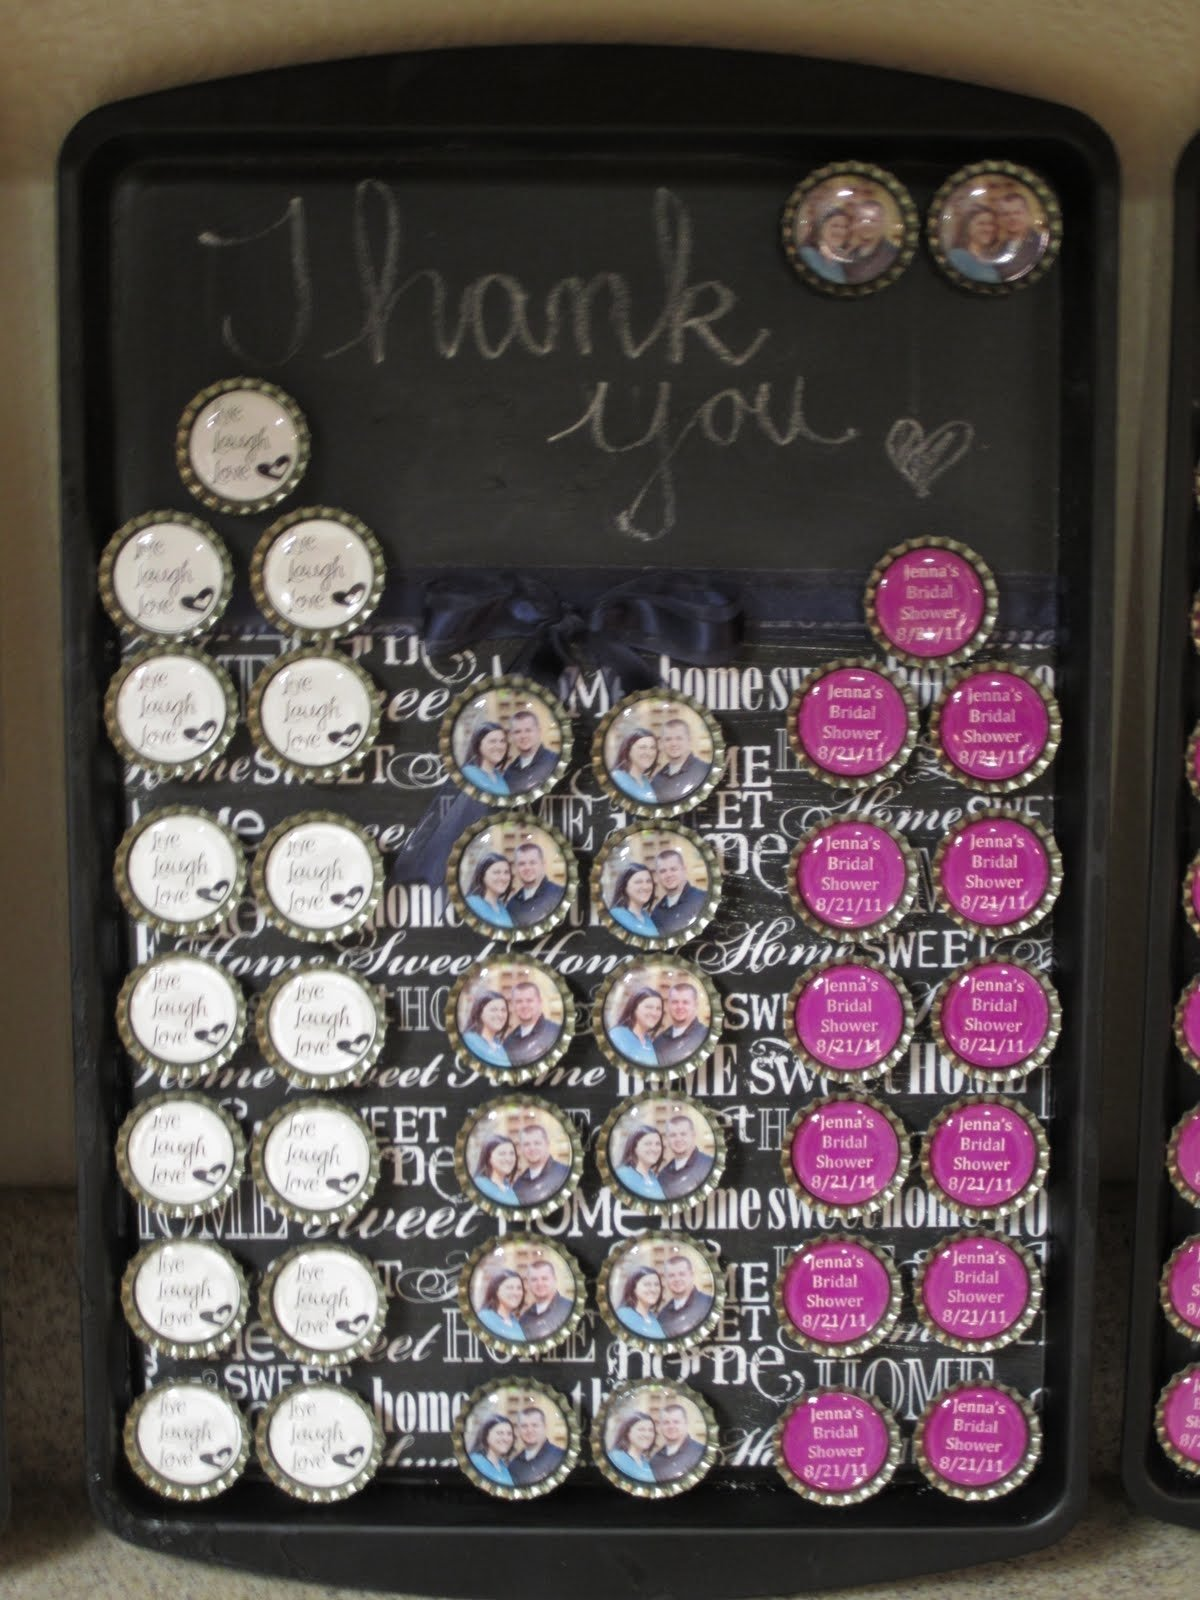 10 Most Popular Homemade Bridal Shower Gift Ideas photo nicole s nifty creations image 1